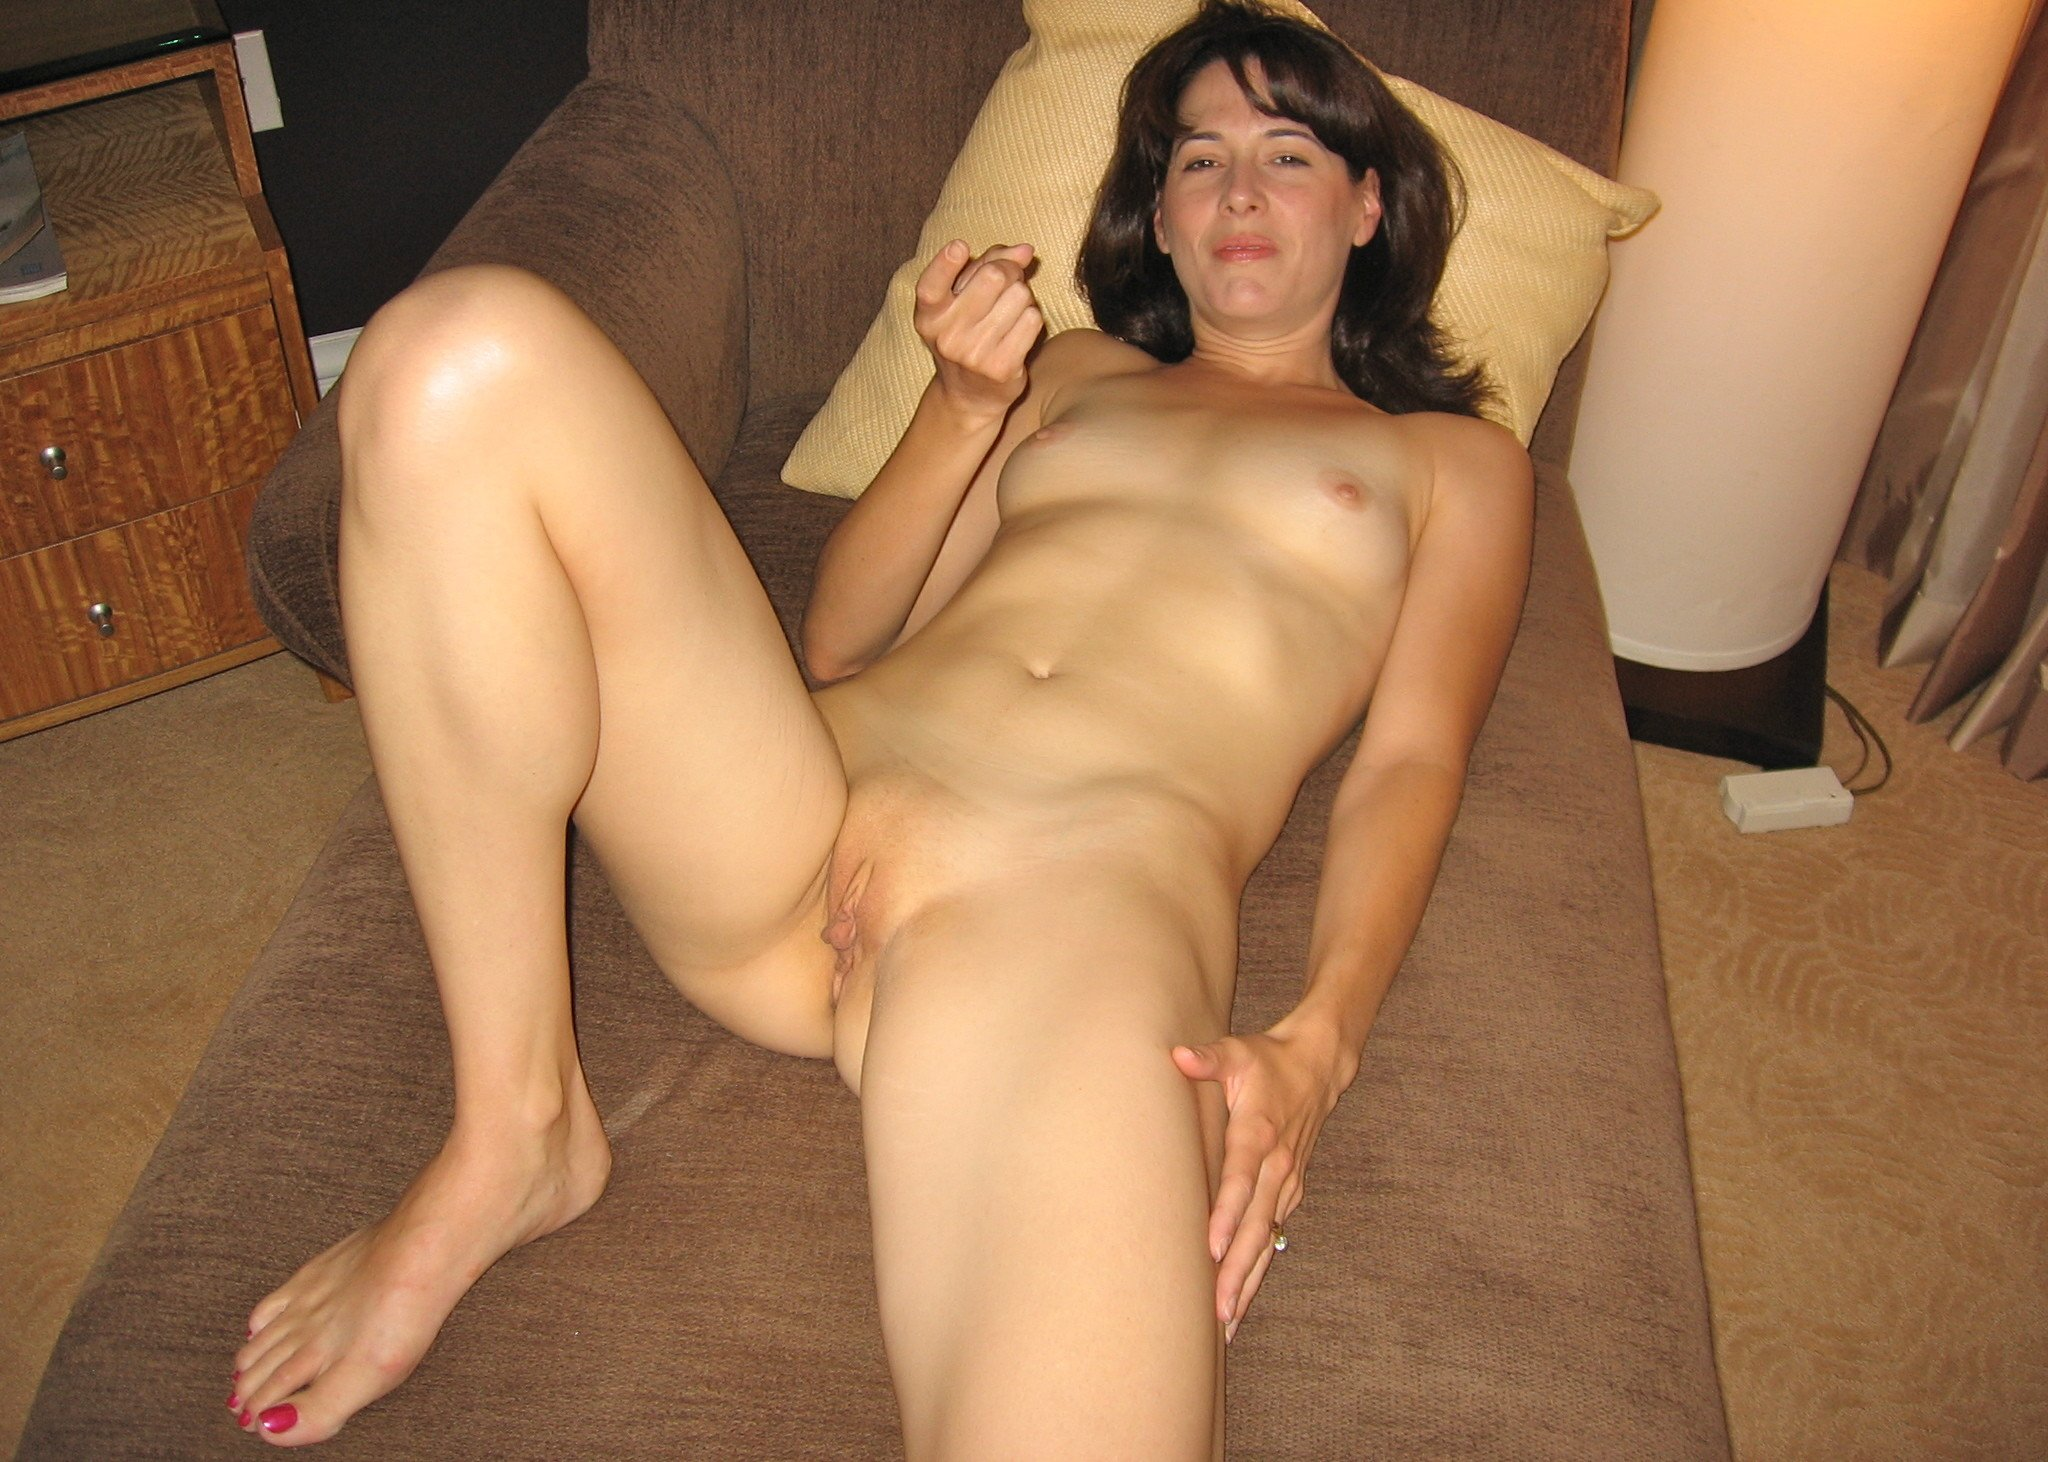 Teen photo sex free amateur nude naked model hd